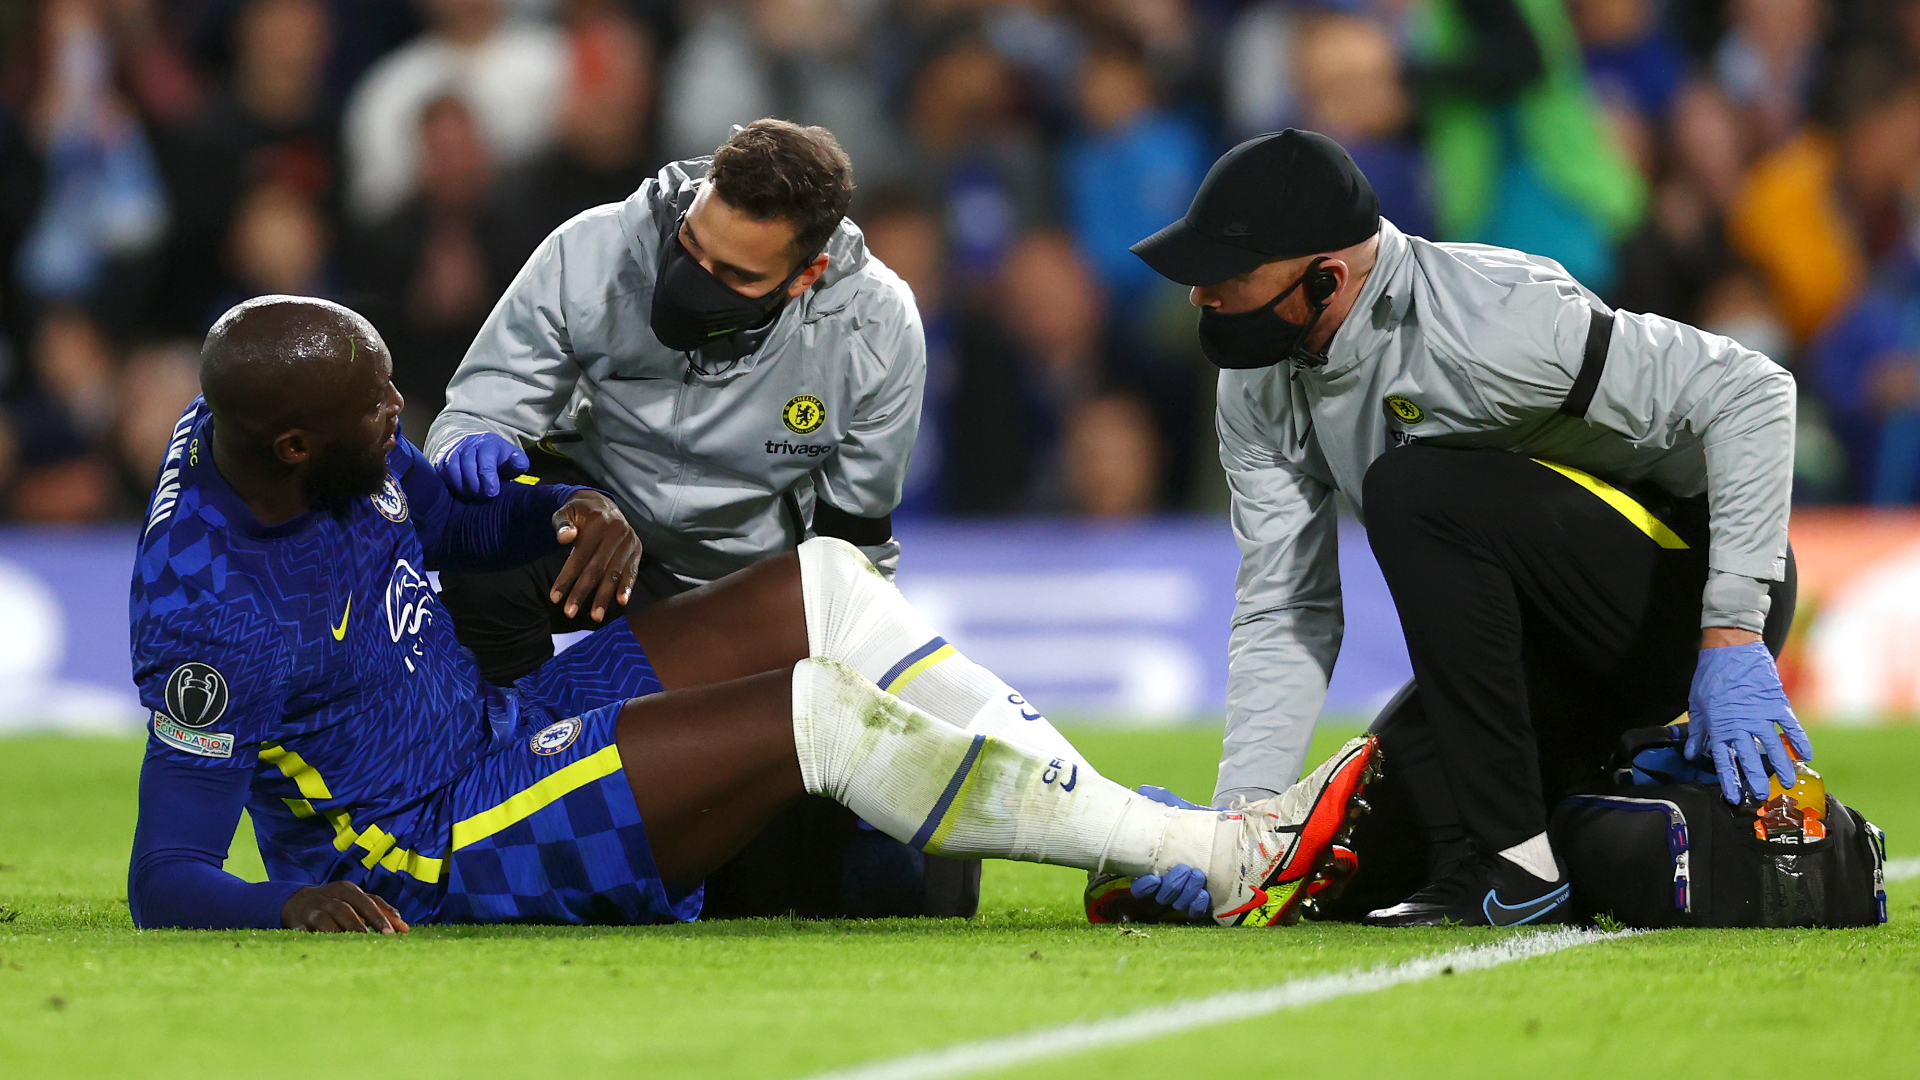 Lukaku avoids major injury scare with Chelsea hopeful striker will miss only two or three weeks